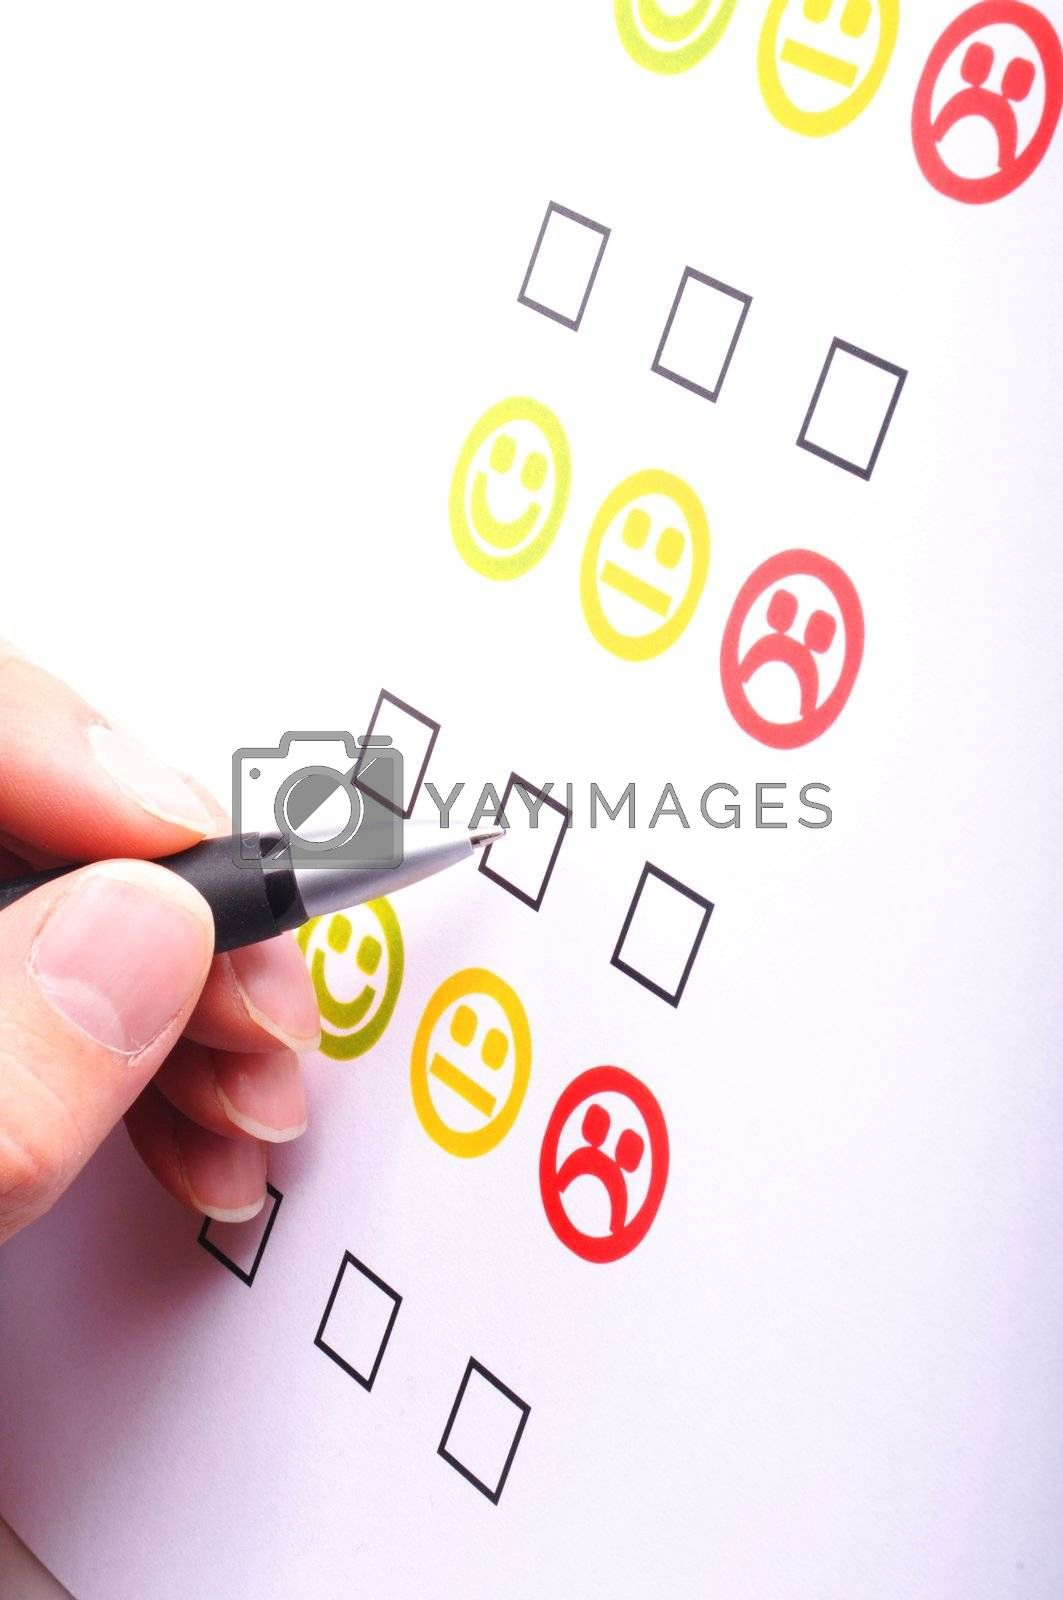 marketing interview with checkbox or tickbox and smilie